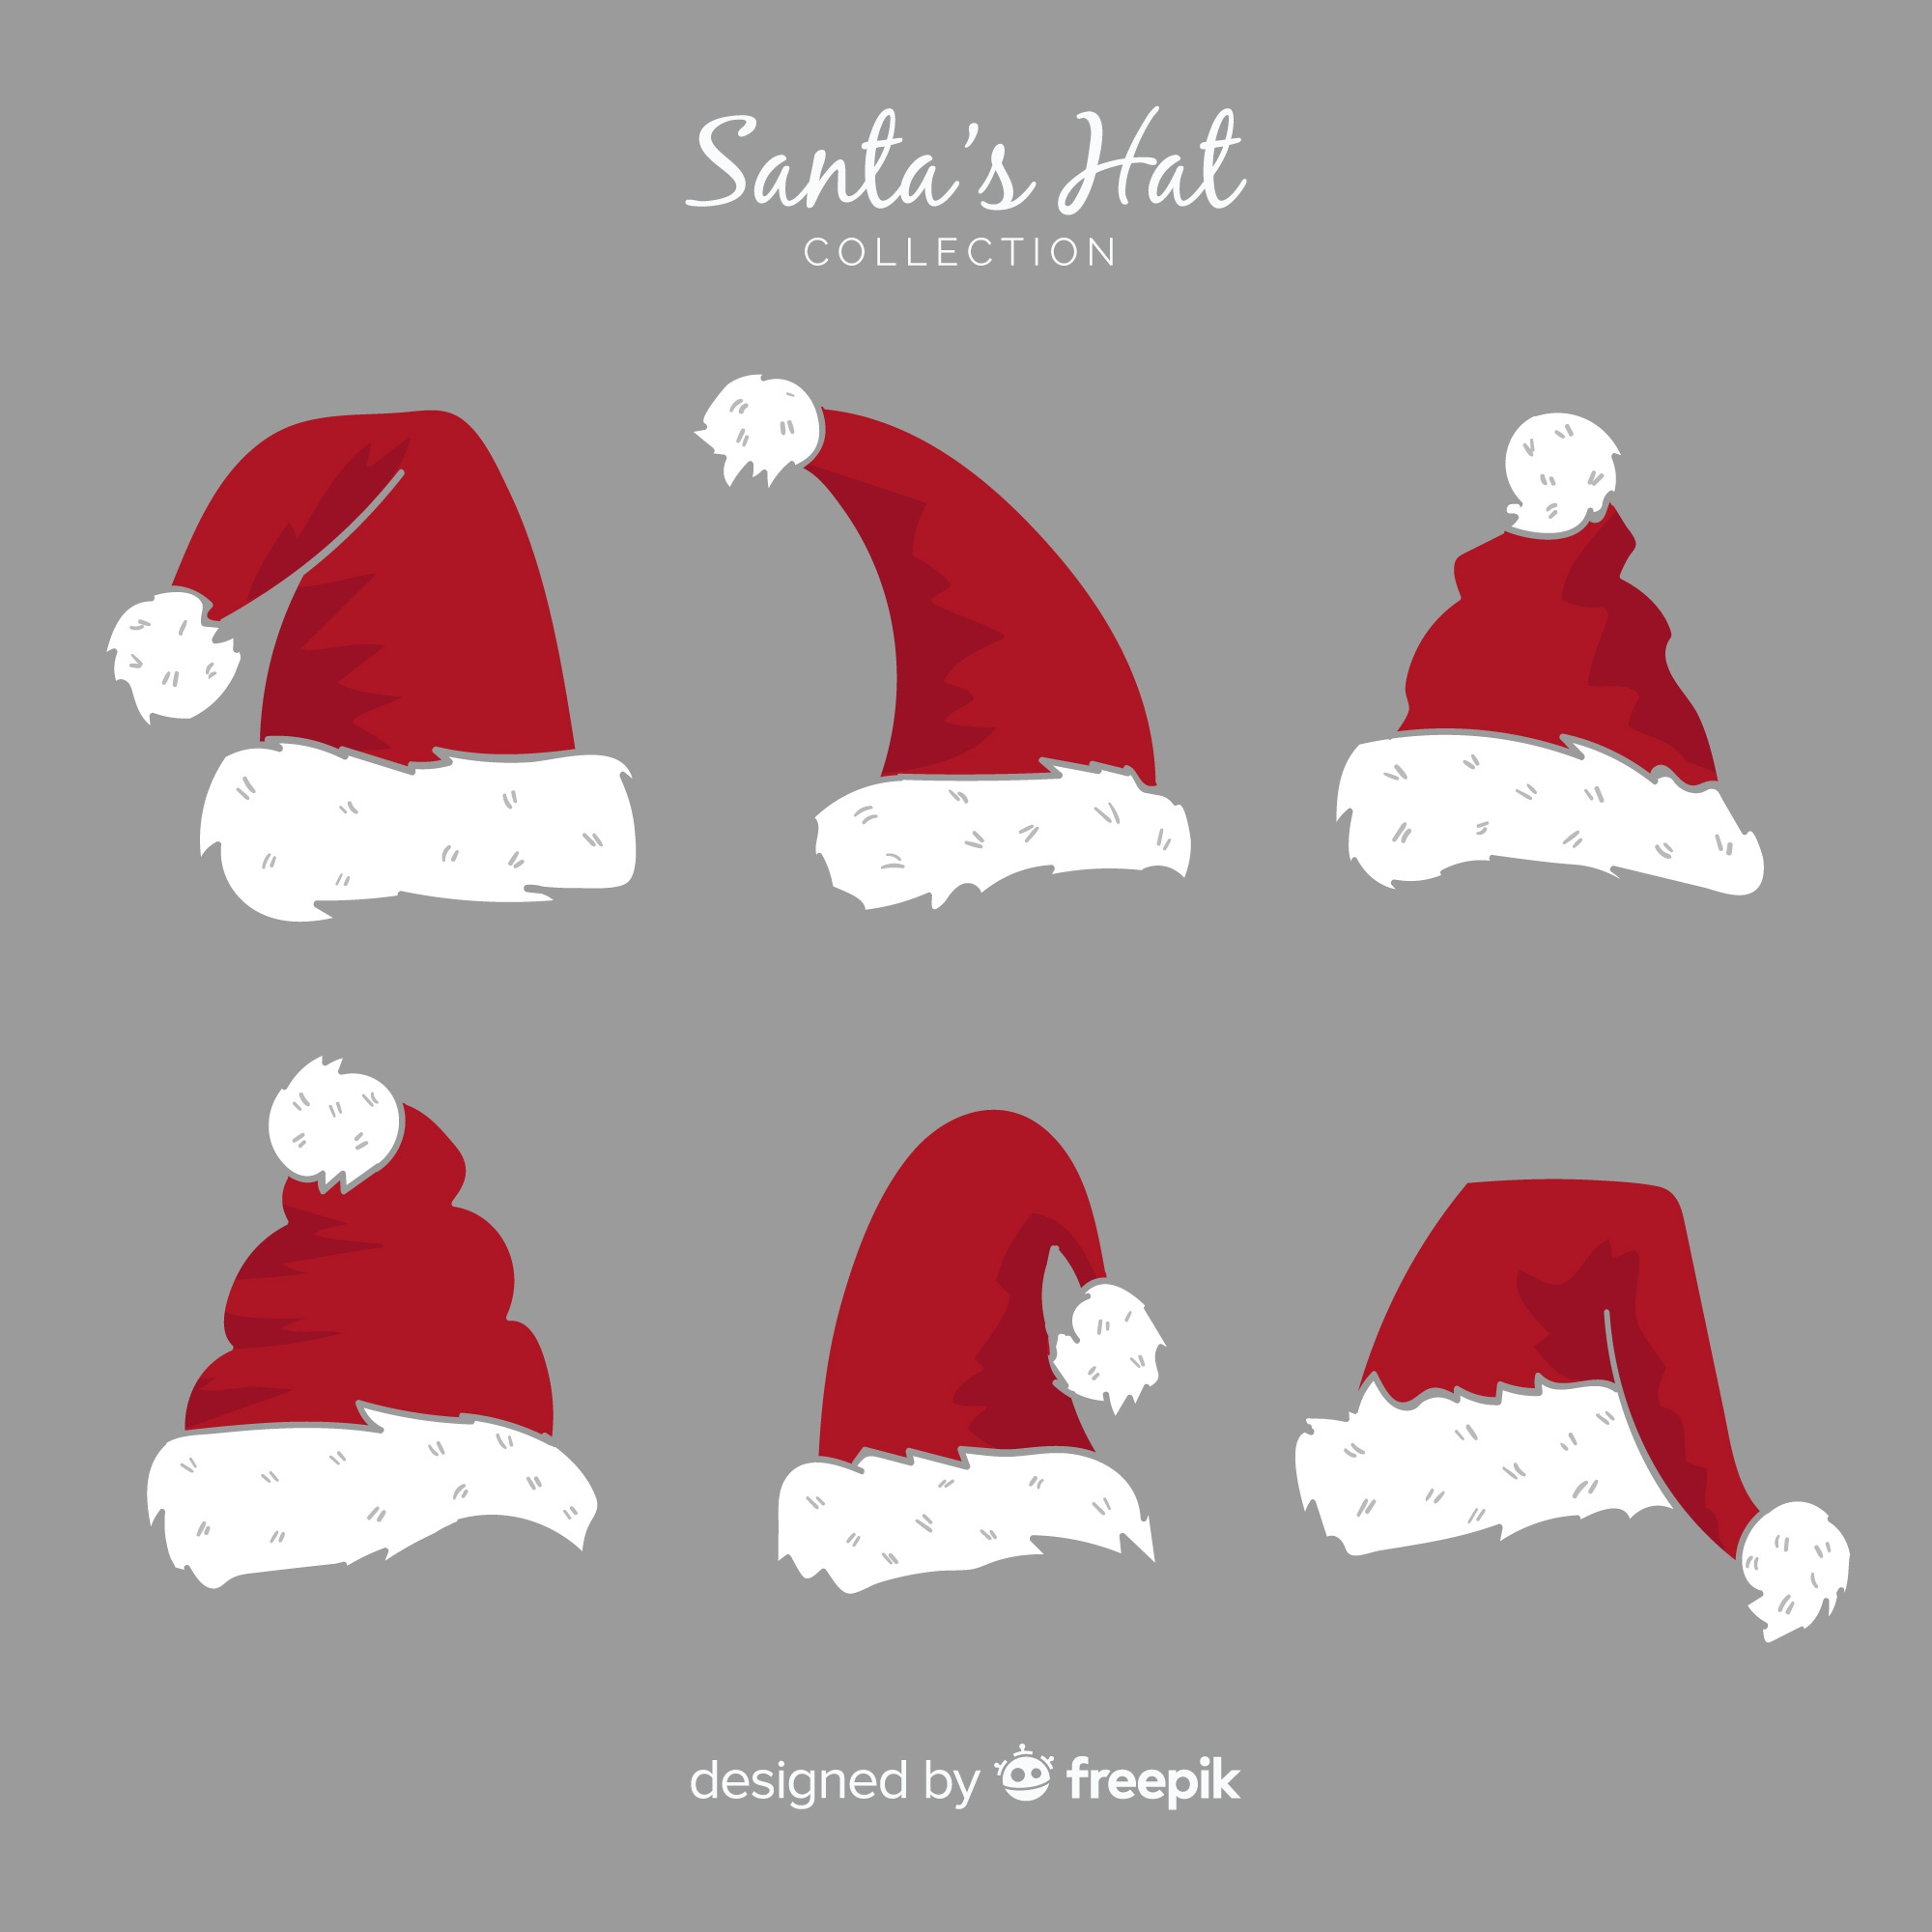 Santa's hat christmas collection in hand drawn style